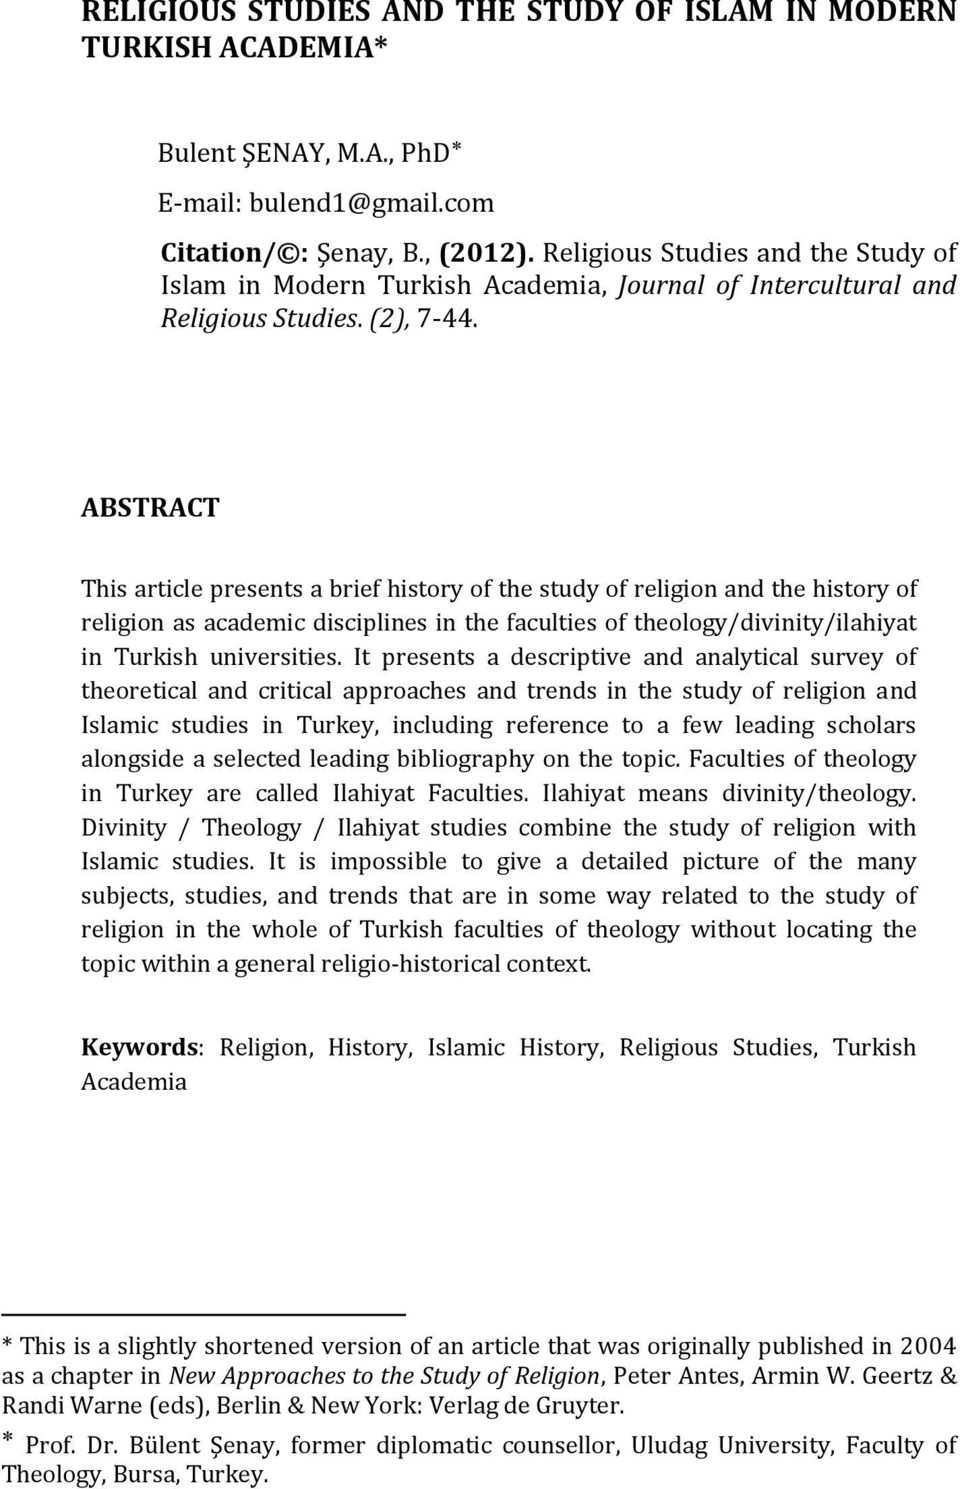 ABSTRACT This article presents a brief history of the study of religion and the history of religion as academic disciplines in the faculties of theology/divinity/ilahiyat in Turkish universities.